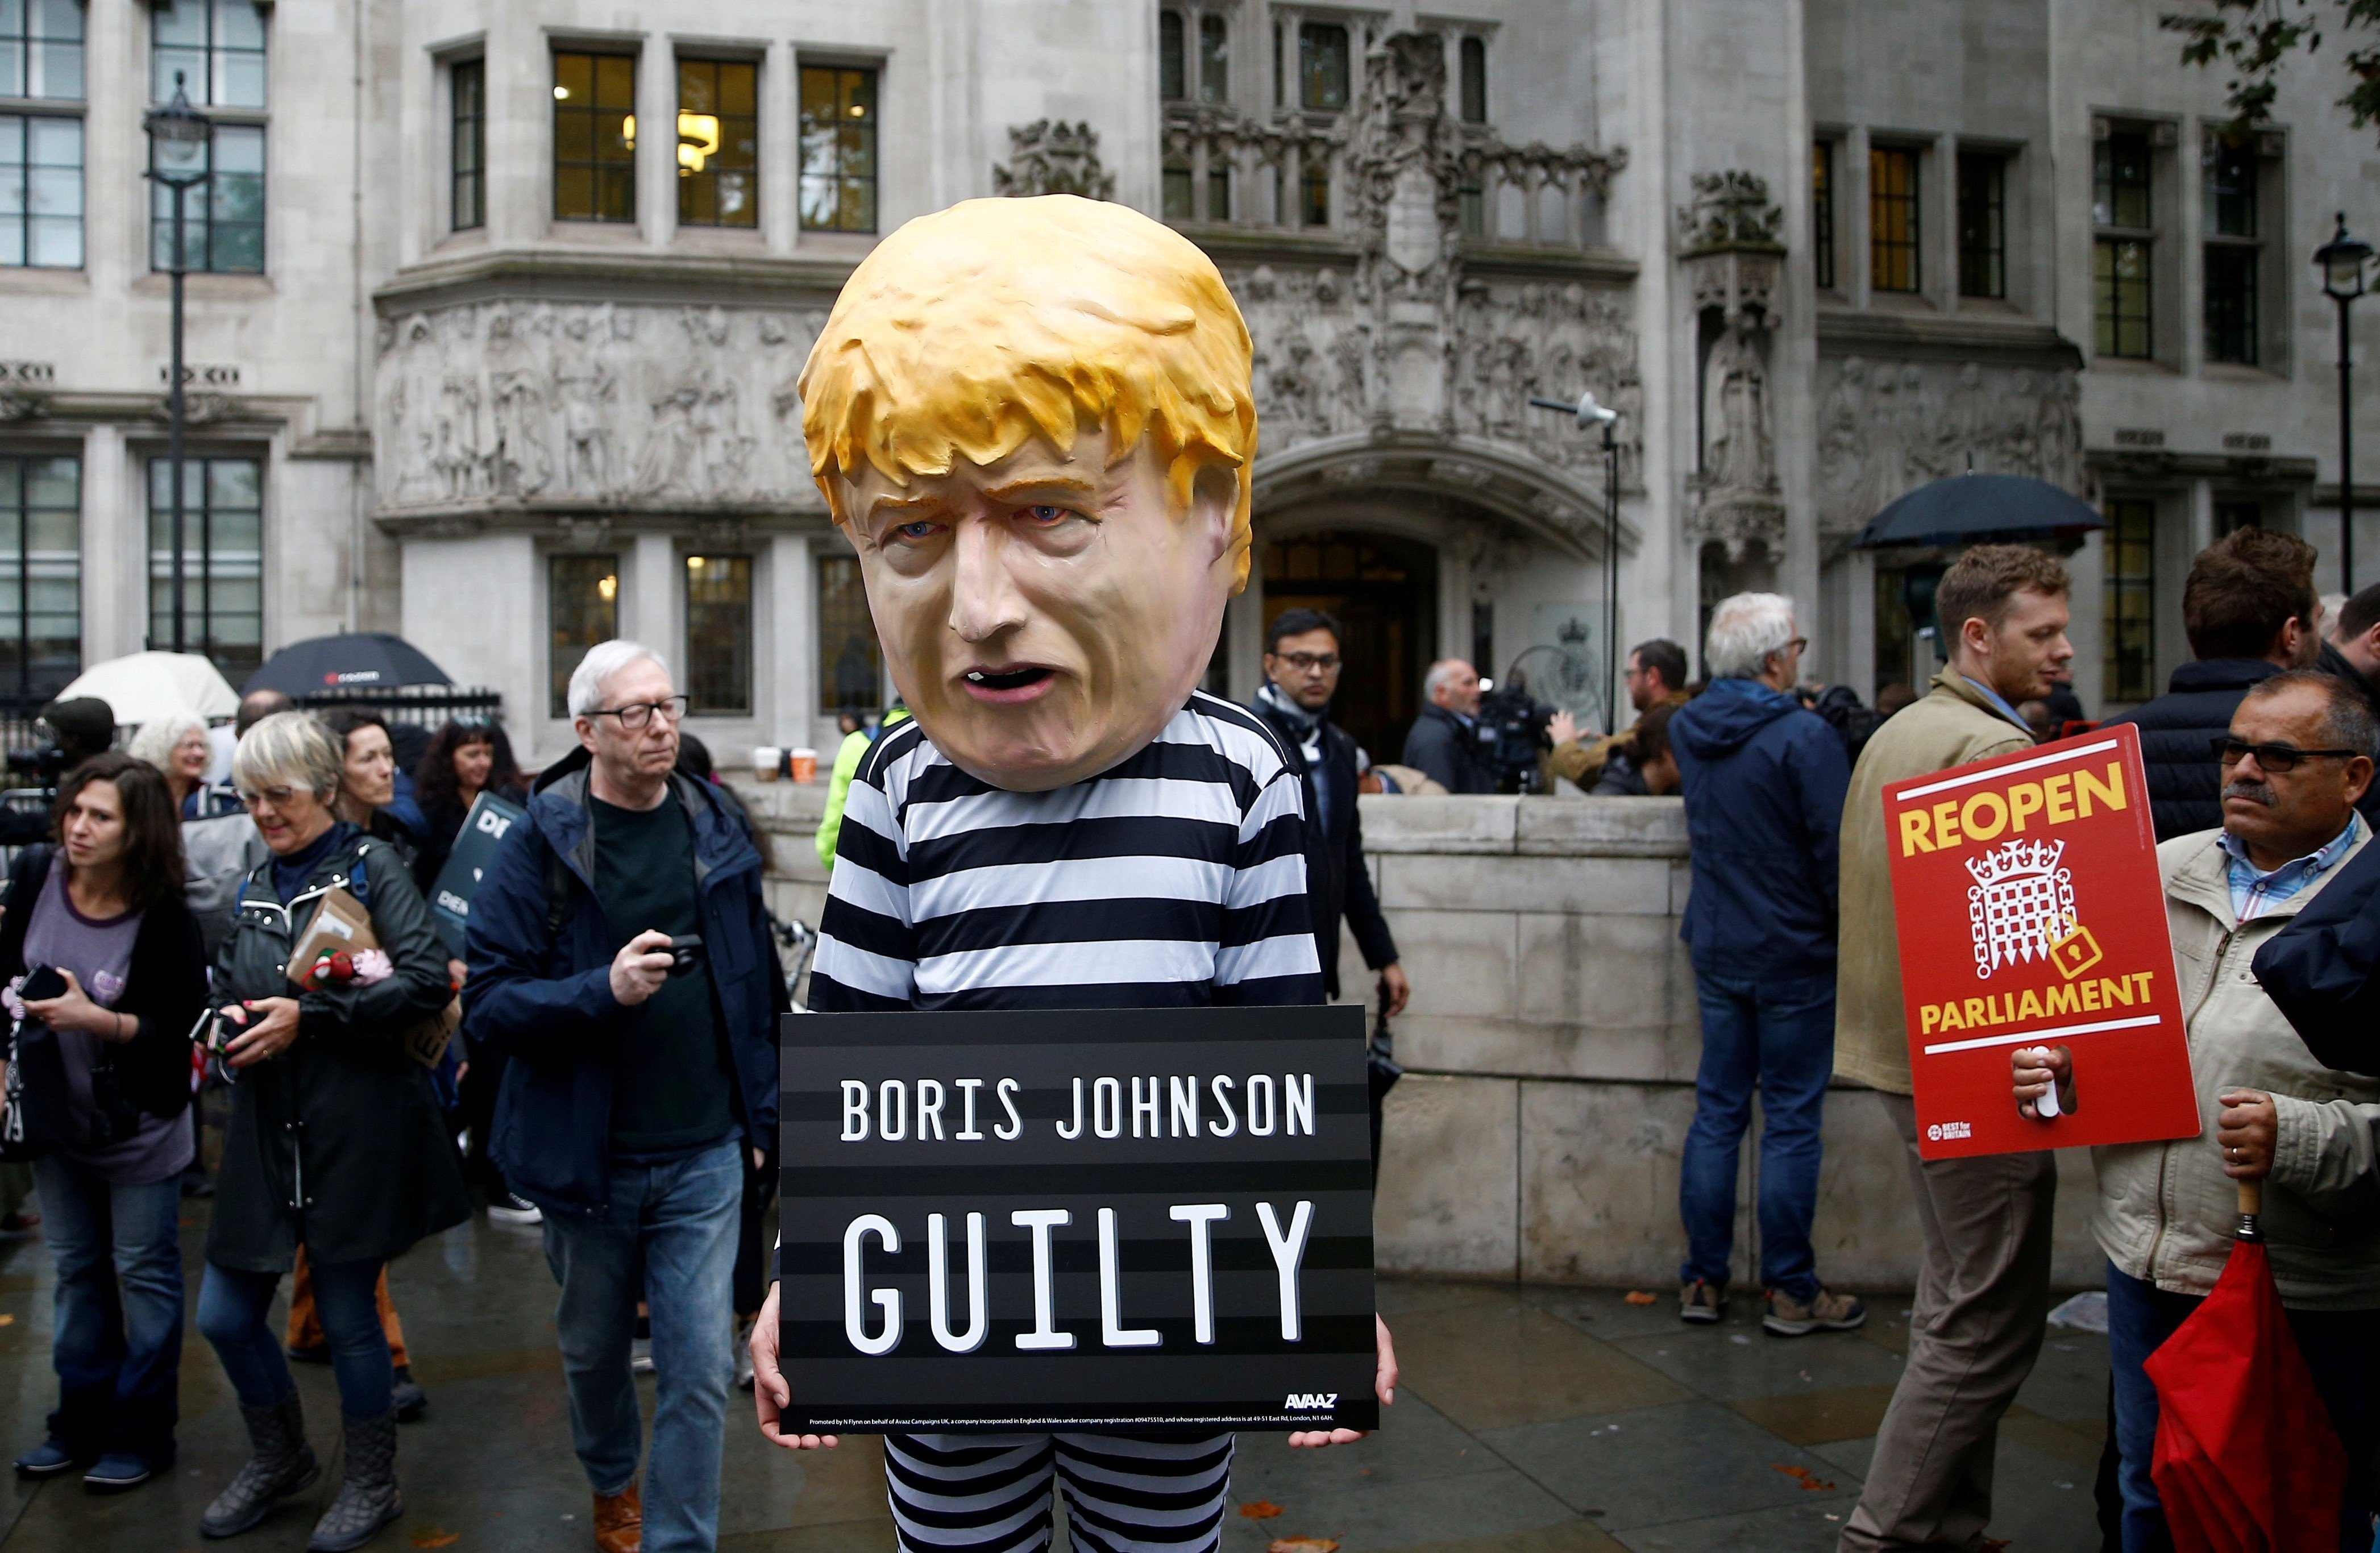 A protester stands outside the Supreme Court of the United Kingdom on 24 September (Reuters)